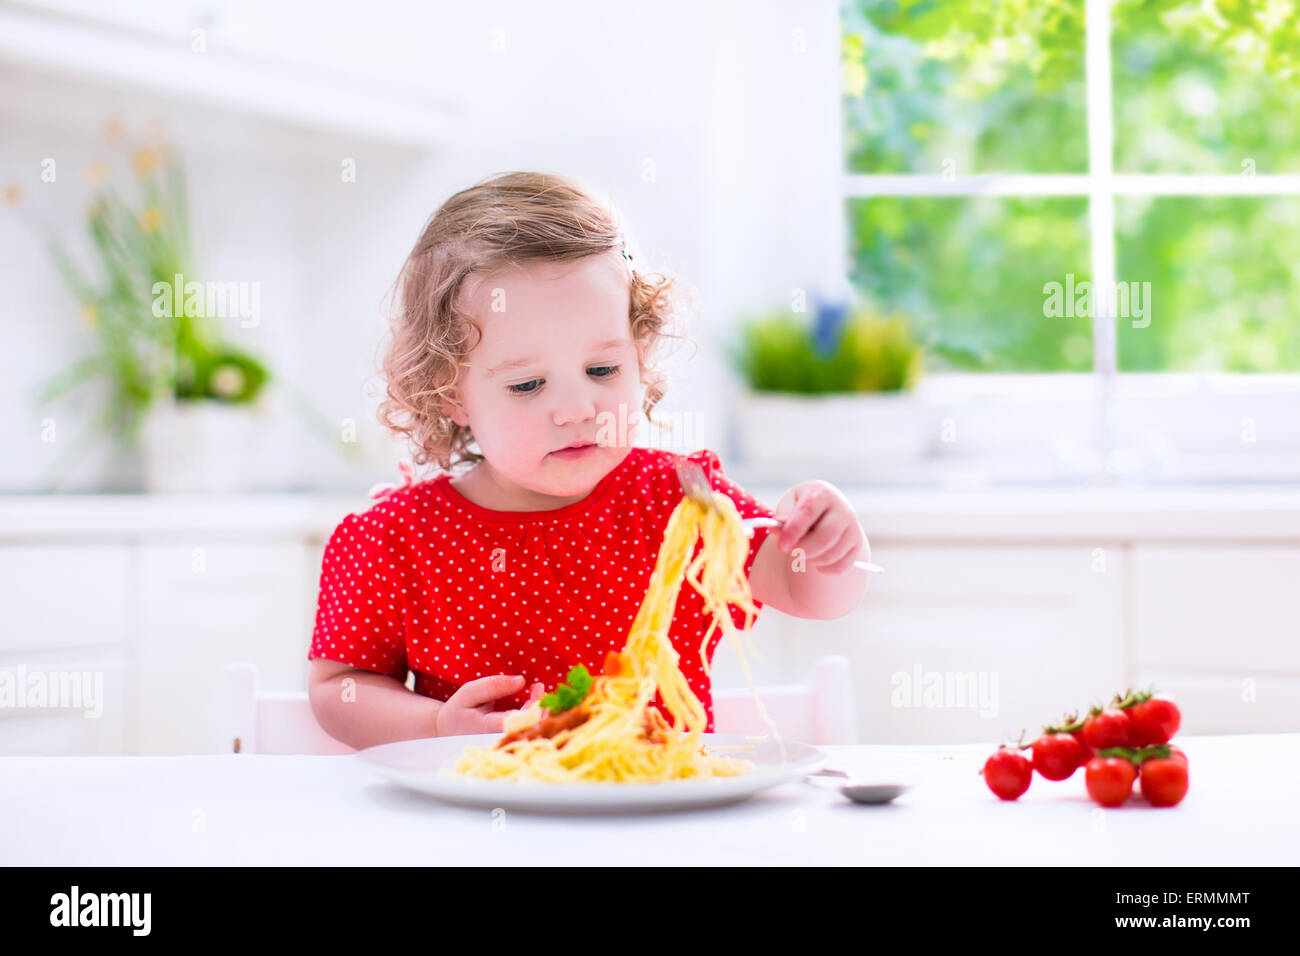 Kids Eat Pasta Healthy Lunch For Children Toddler Kid Eating Spaghetti Bolognese In A White Kitchen At Home Preschooler Child